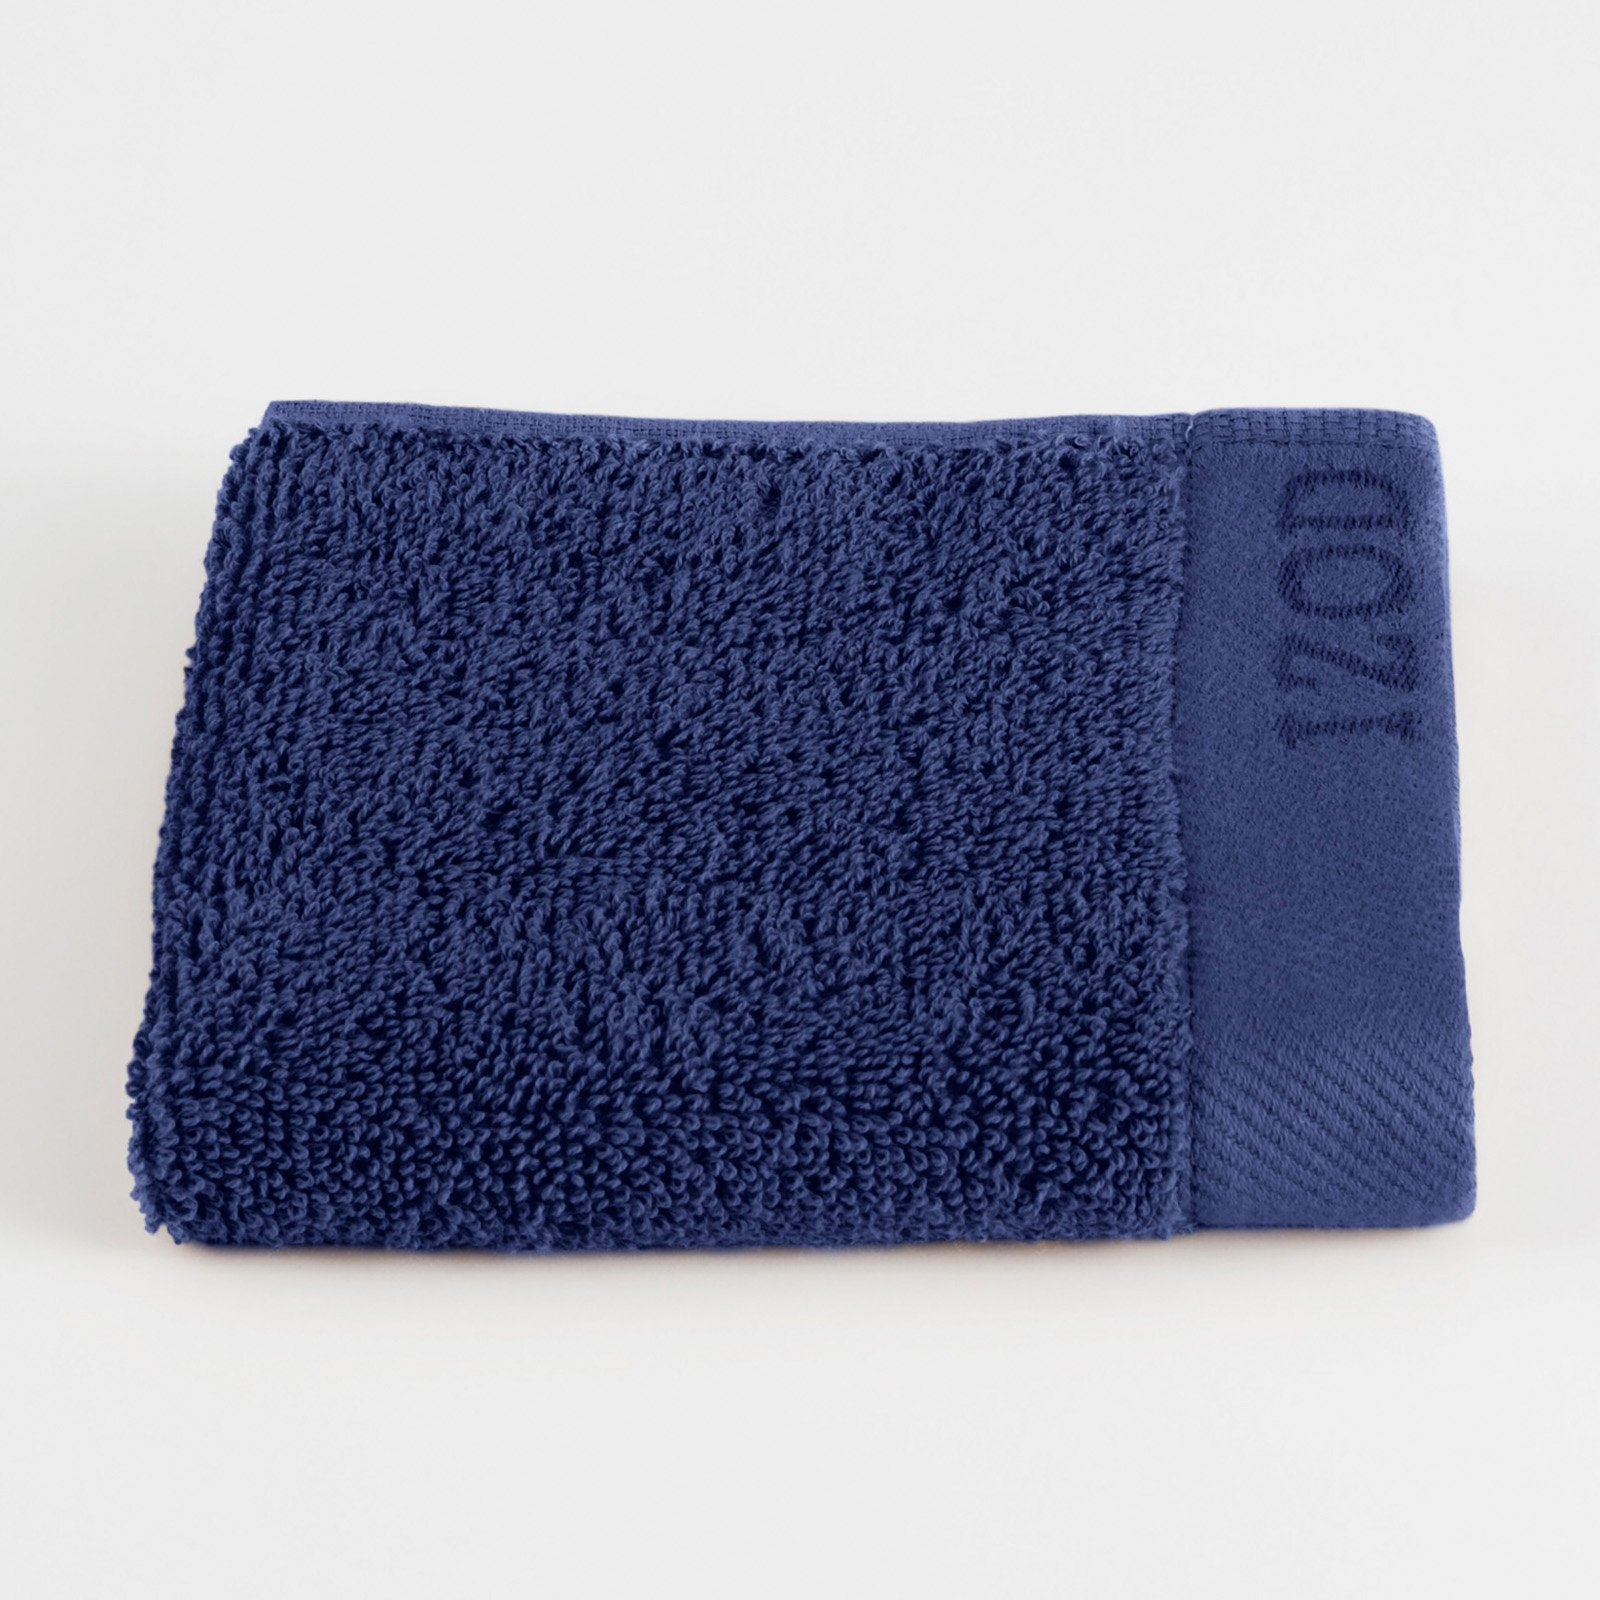 IZOD Classic Egytpian Wash Cloth Set - Set of 4